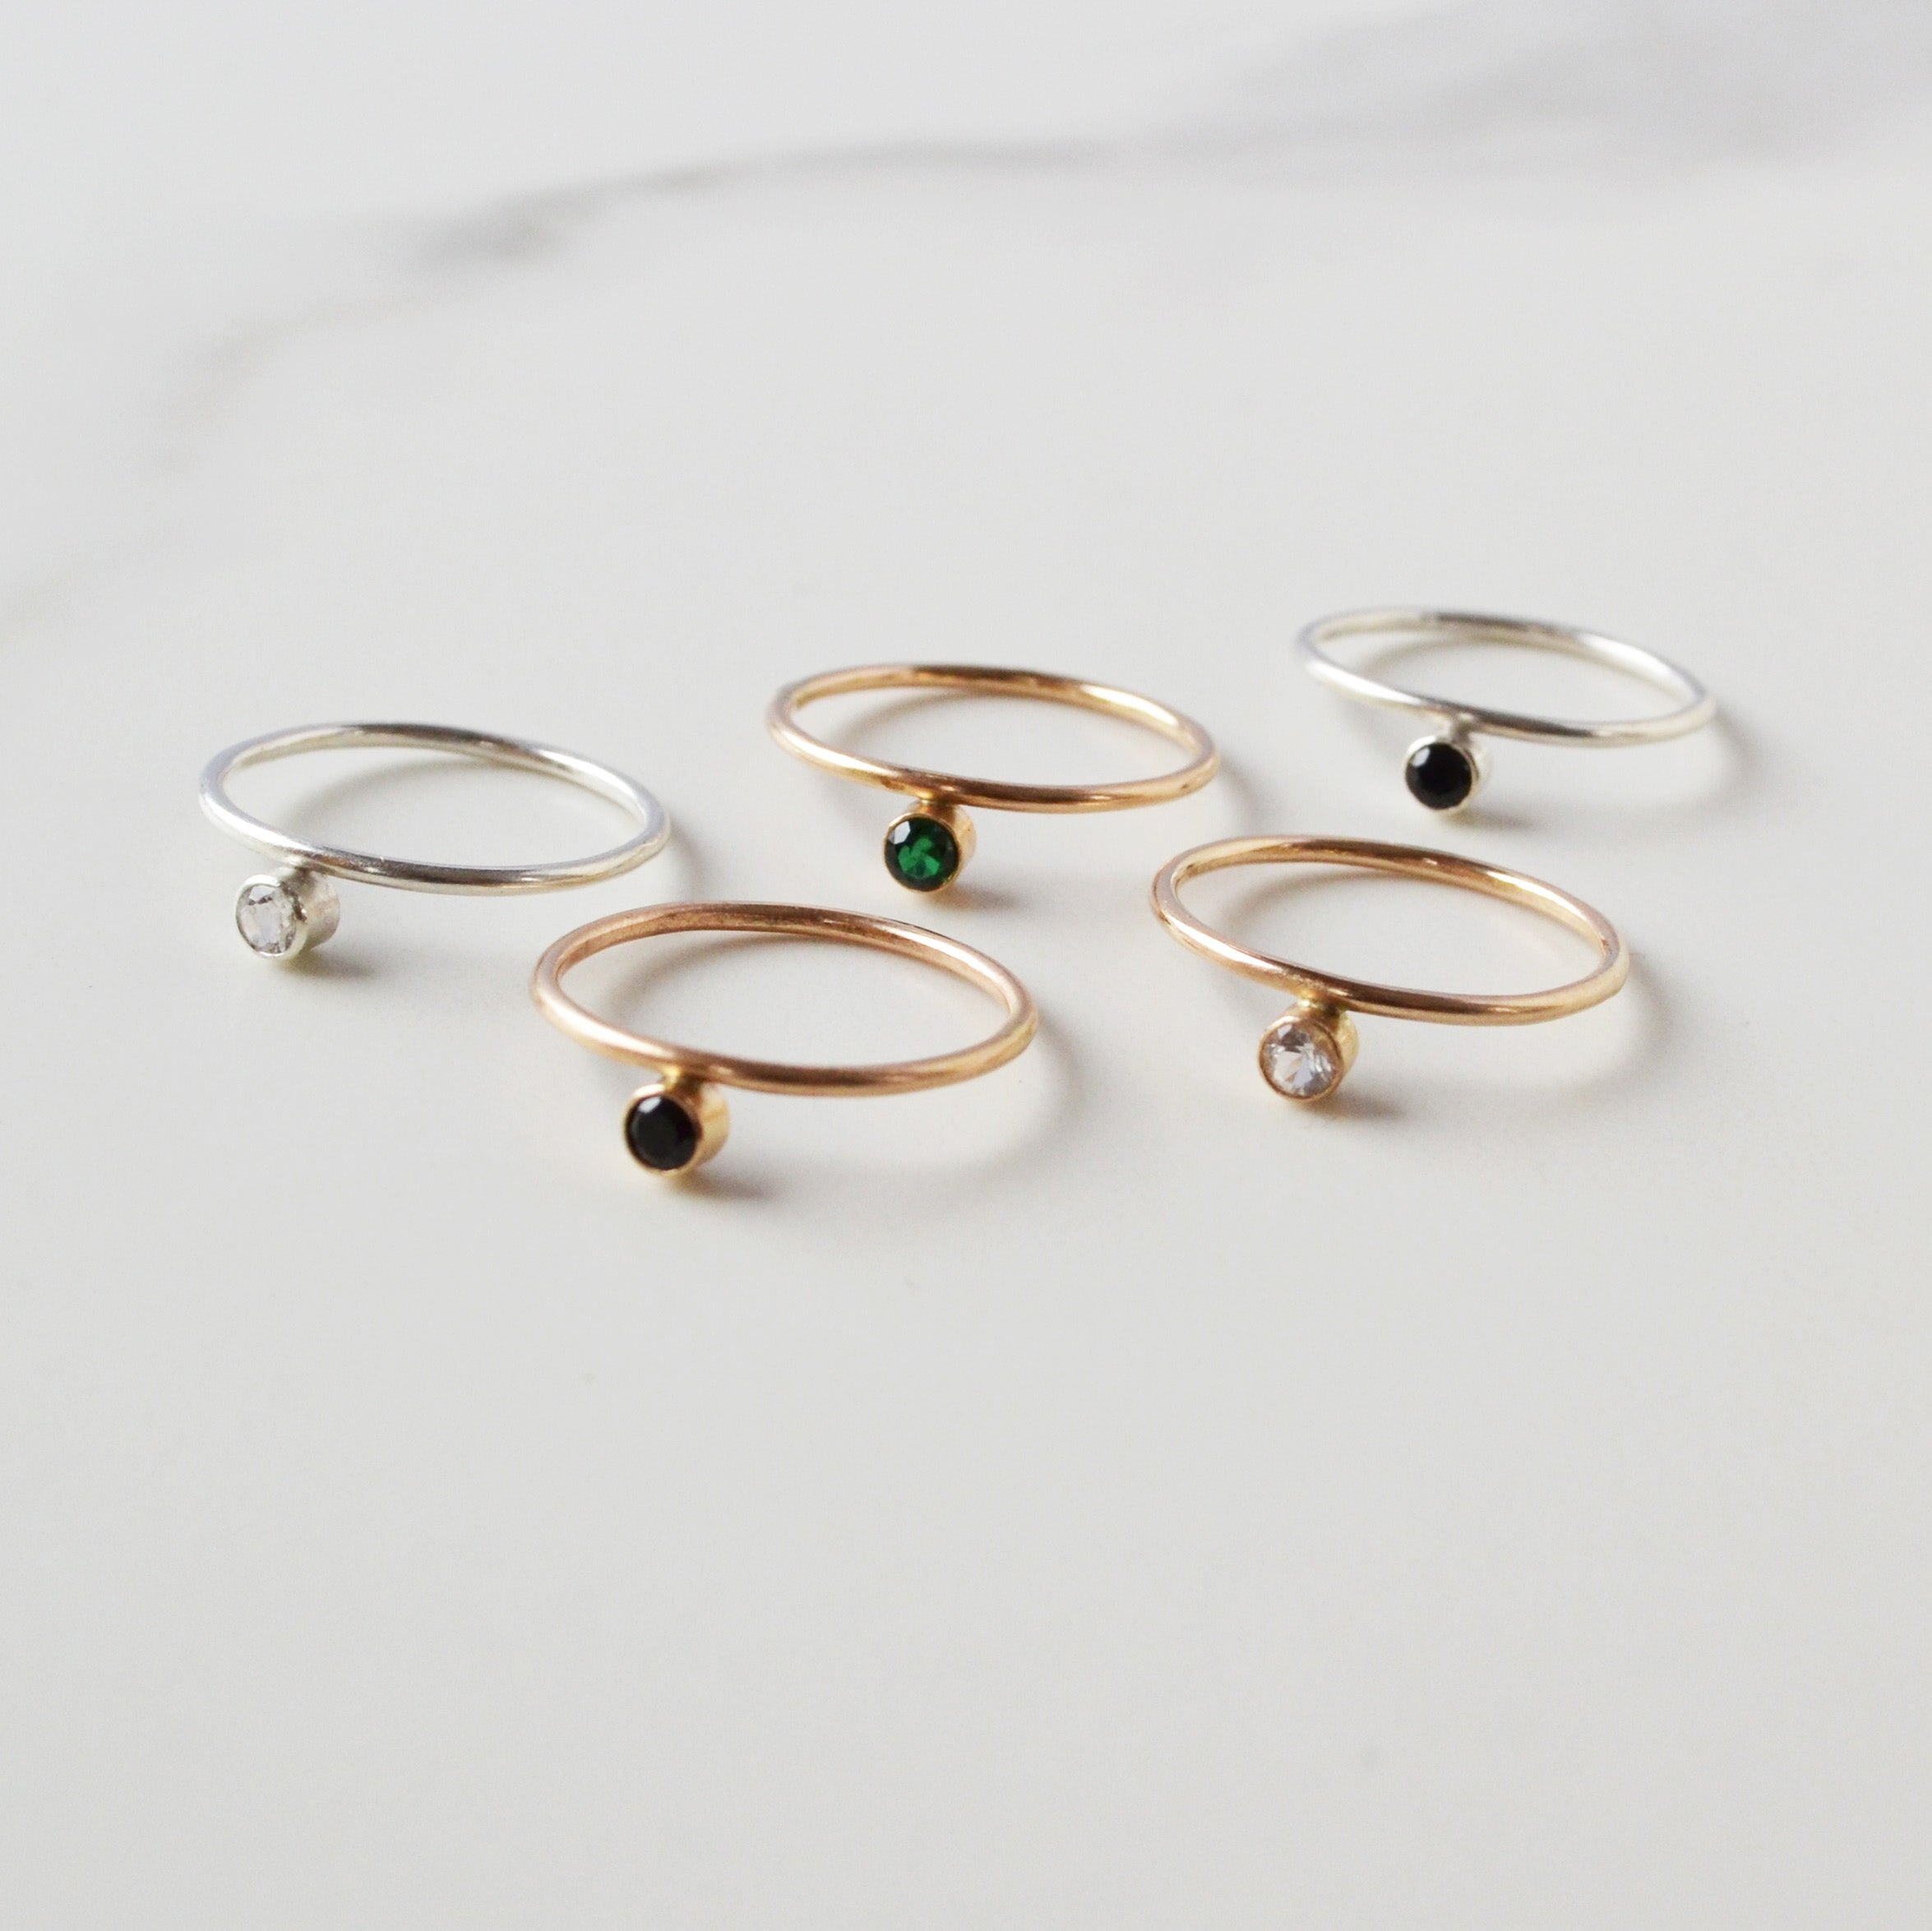 Offset Gemstone Stacking Ring, Gold or Silver